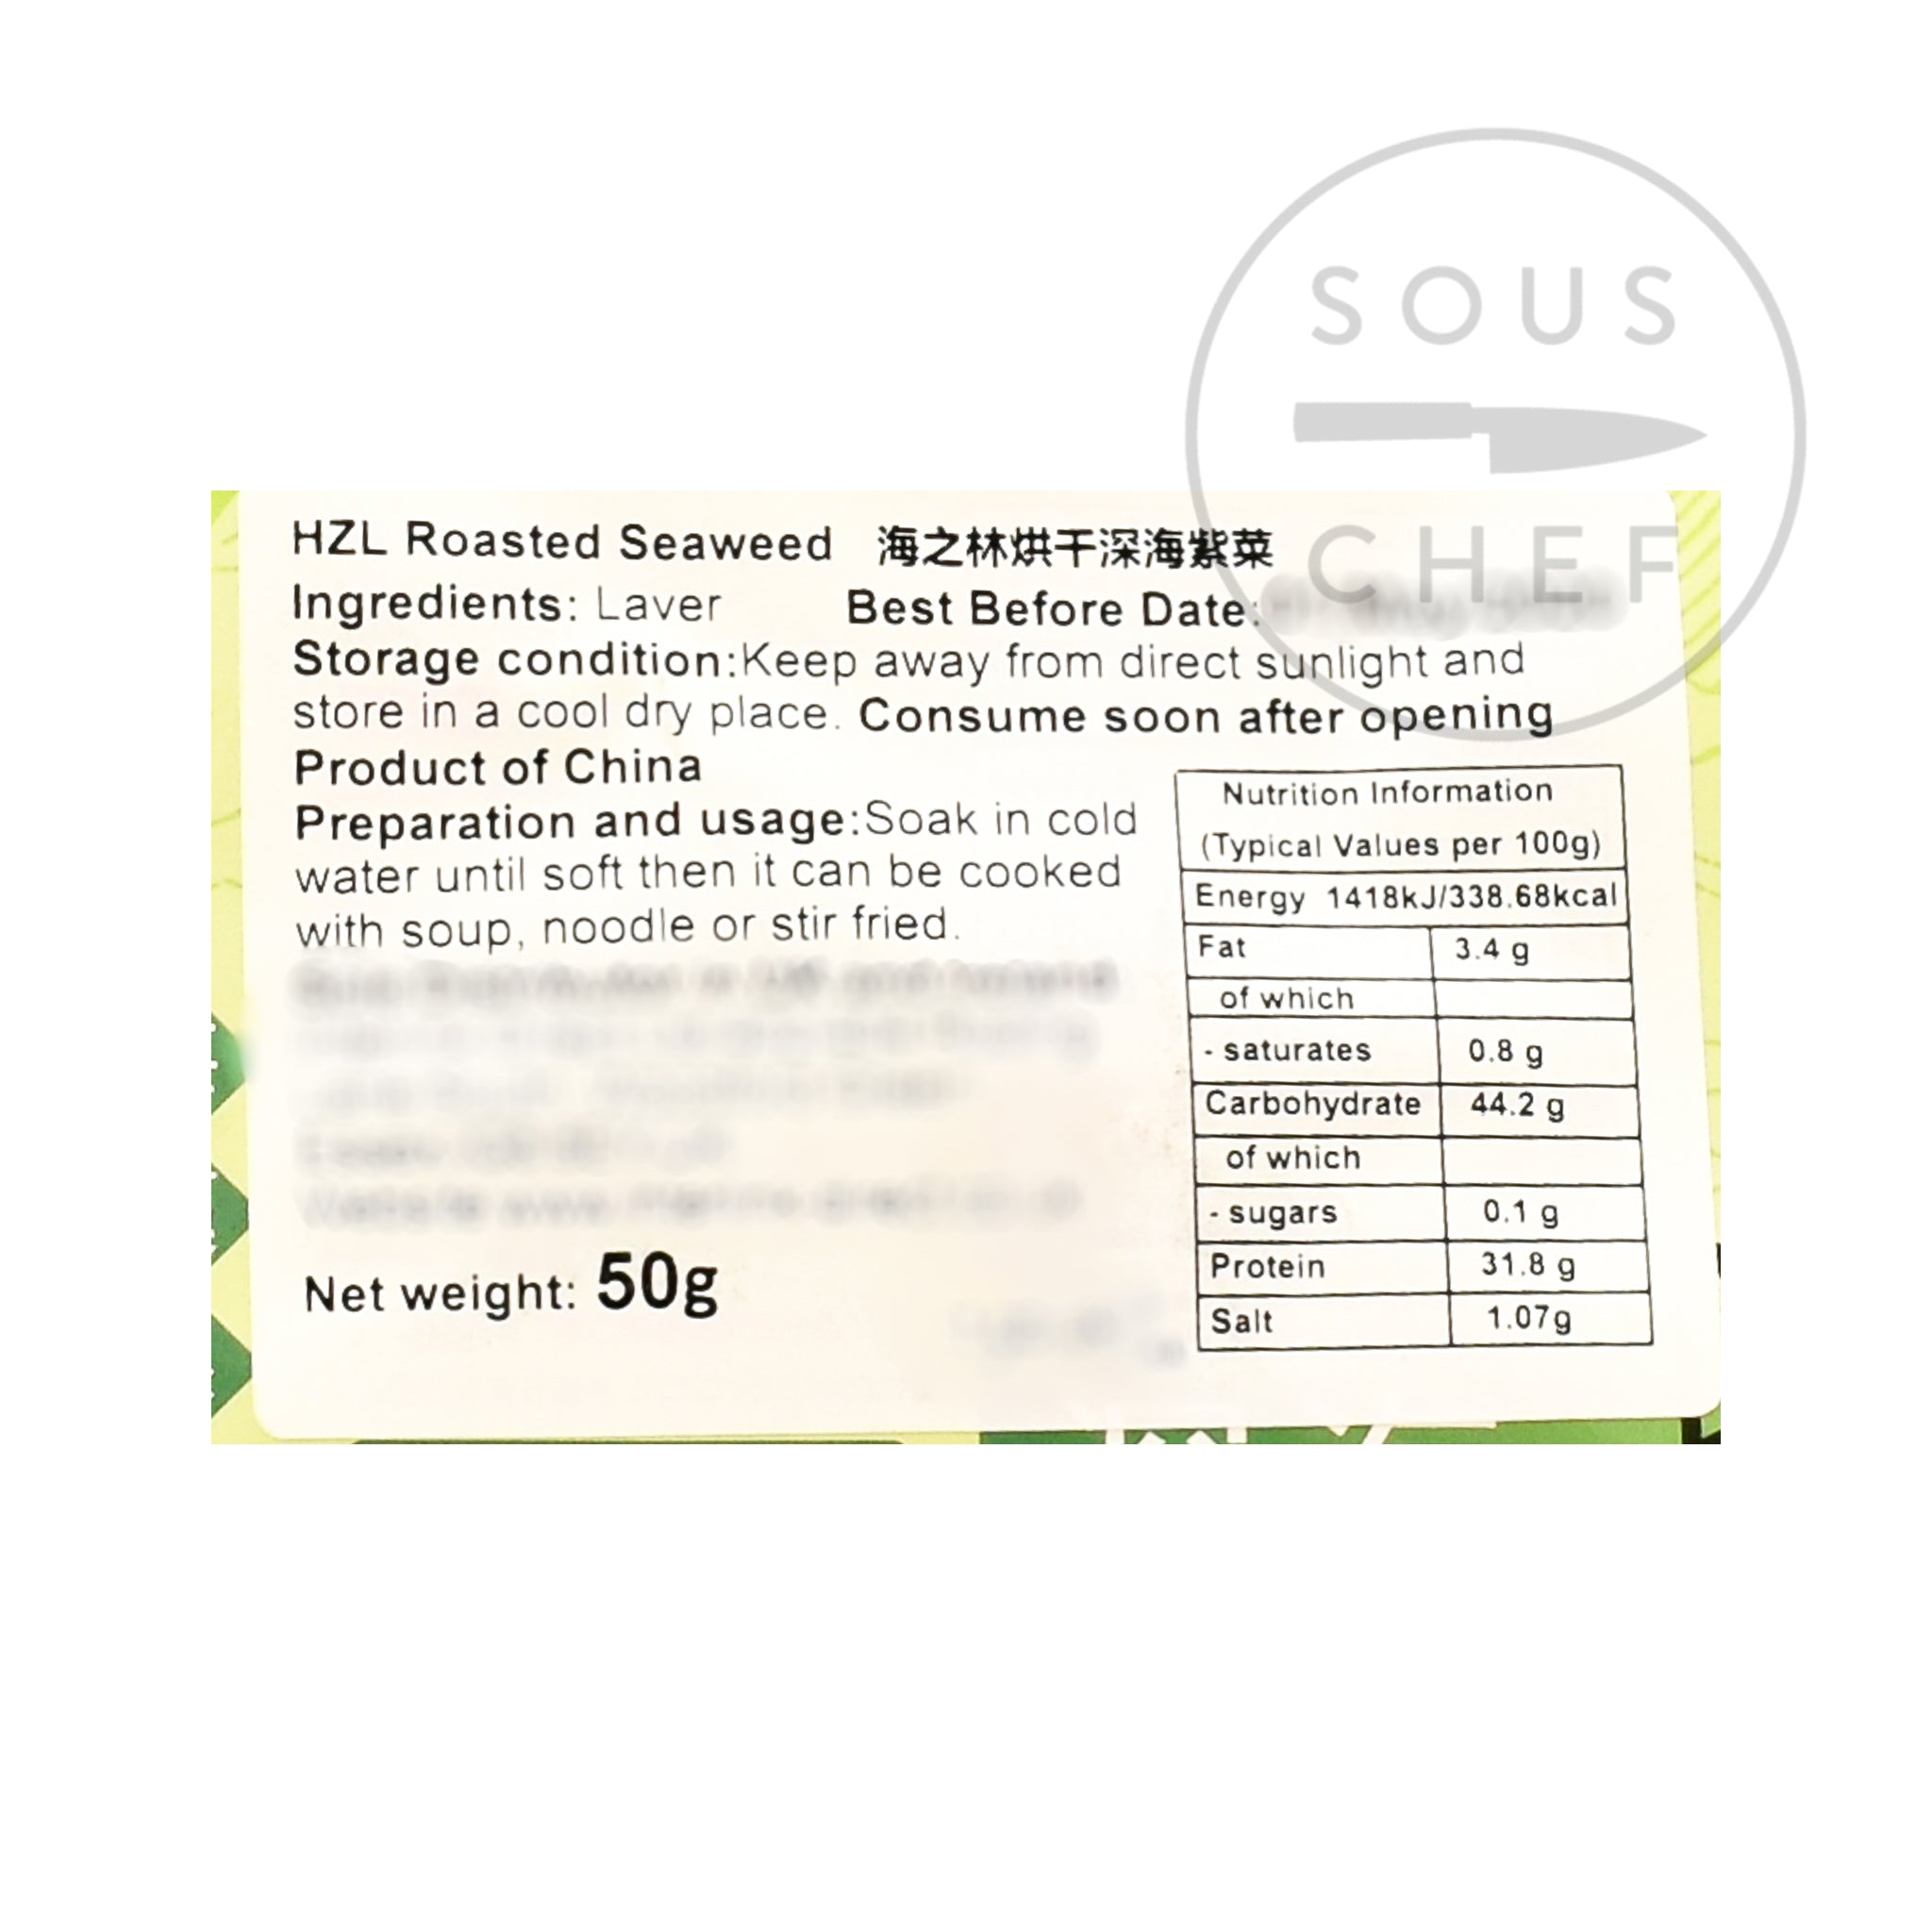 Roasted Seaweed - Laver 50g nutritional information ingredients